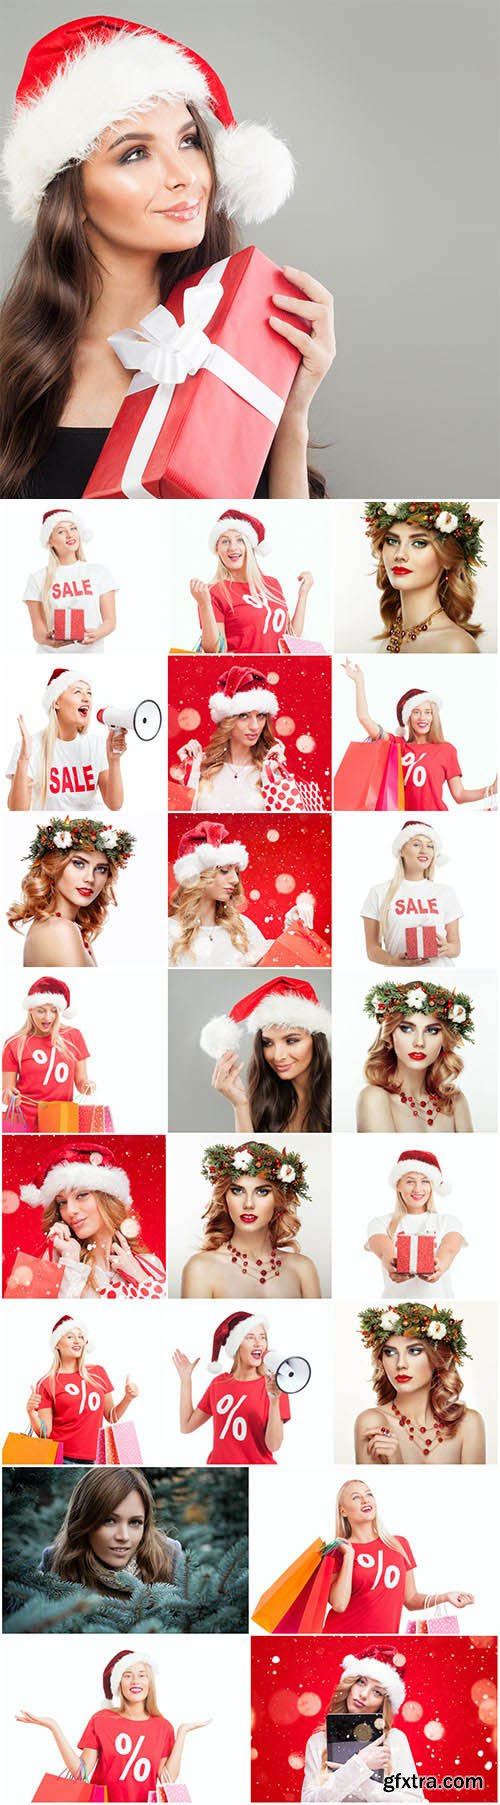 New Year and Christmas stock photos №74